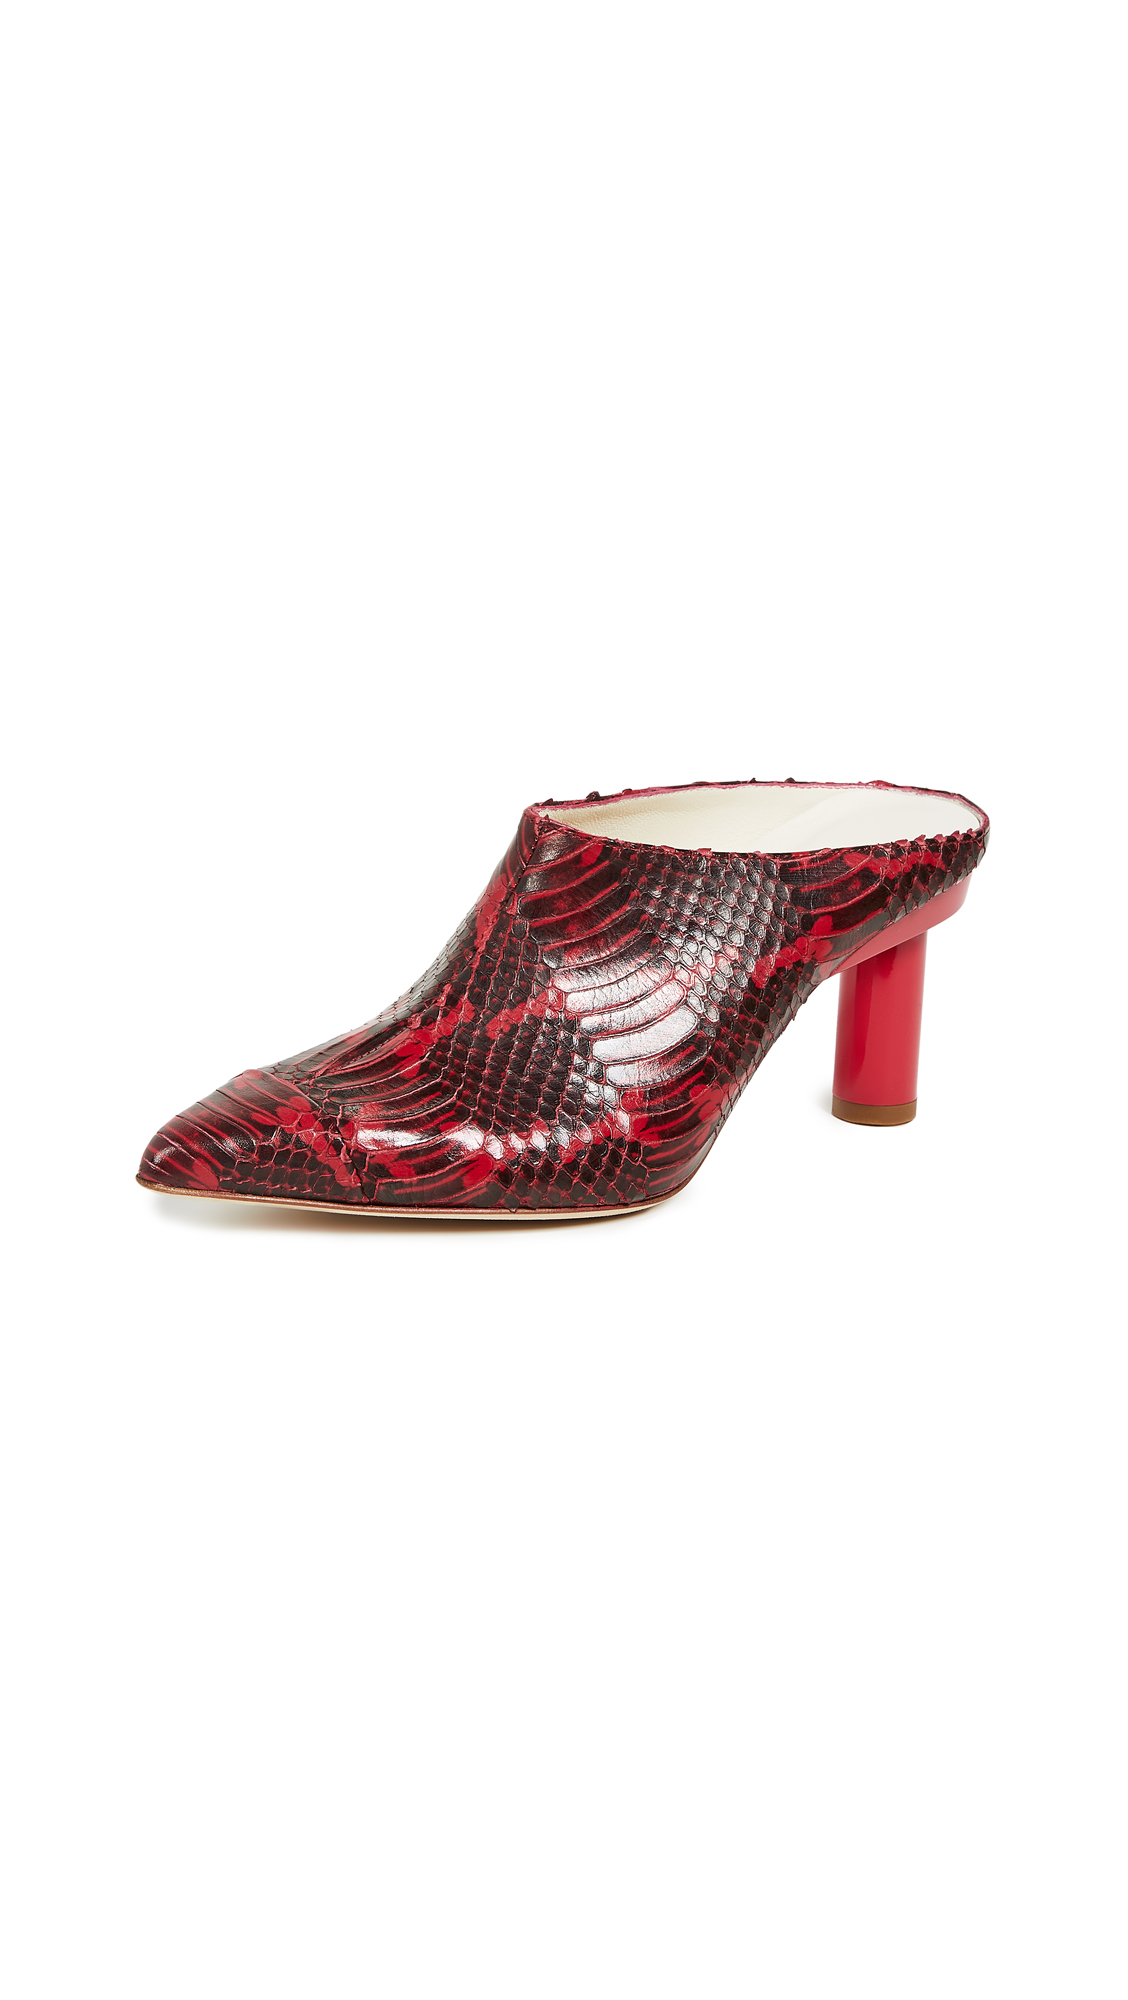 Joel Pedestal Heel Mule in Cherry Red